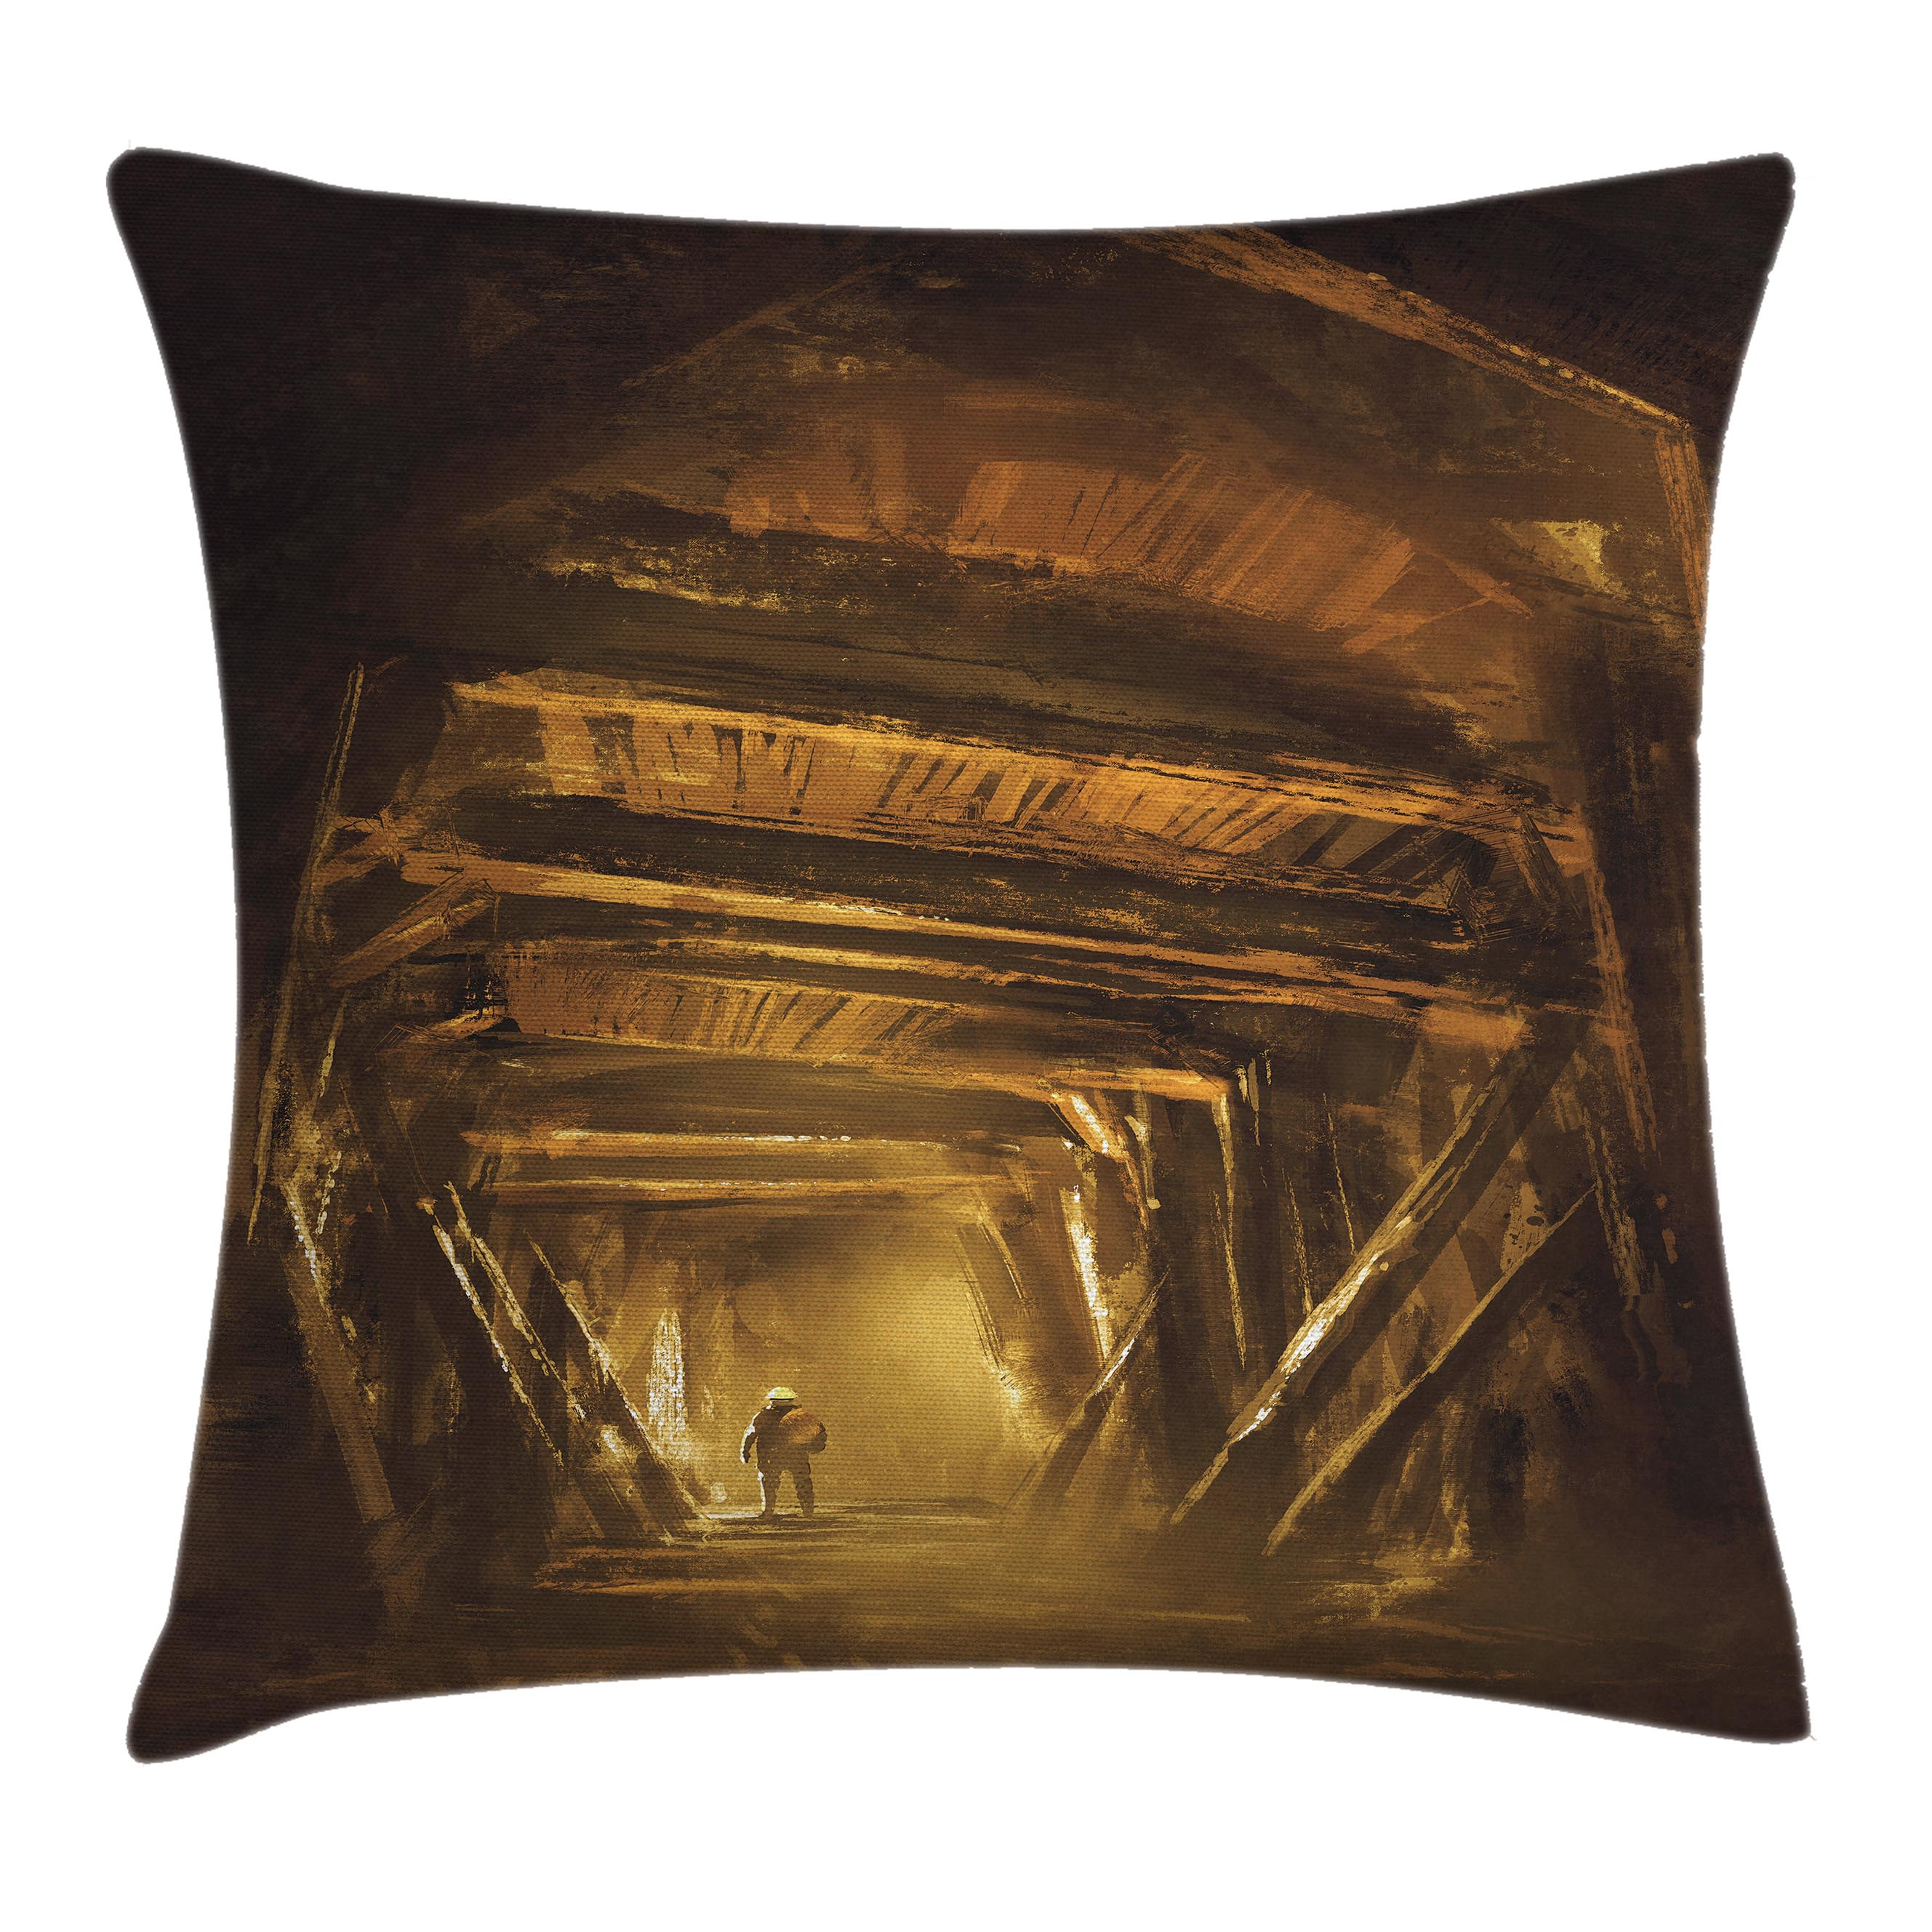 Cartoon Decor Throw Pillow Cushion Cover, Art Painting of Abandoned Mine with Explorer Mystic Adventure Print, Decorative Square Accent Pillow Case, 18 X 18 Inches, Golden and Brown, by Ambesonne